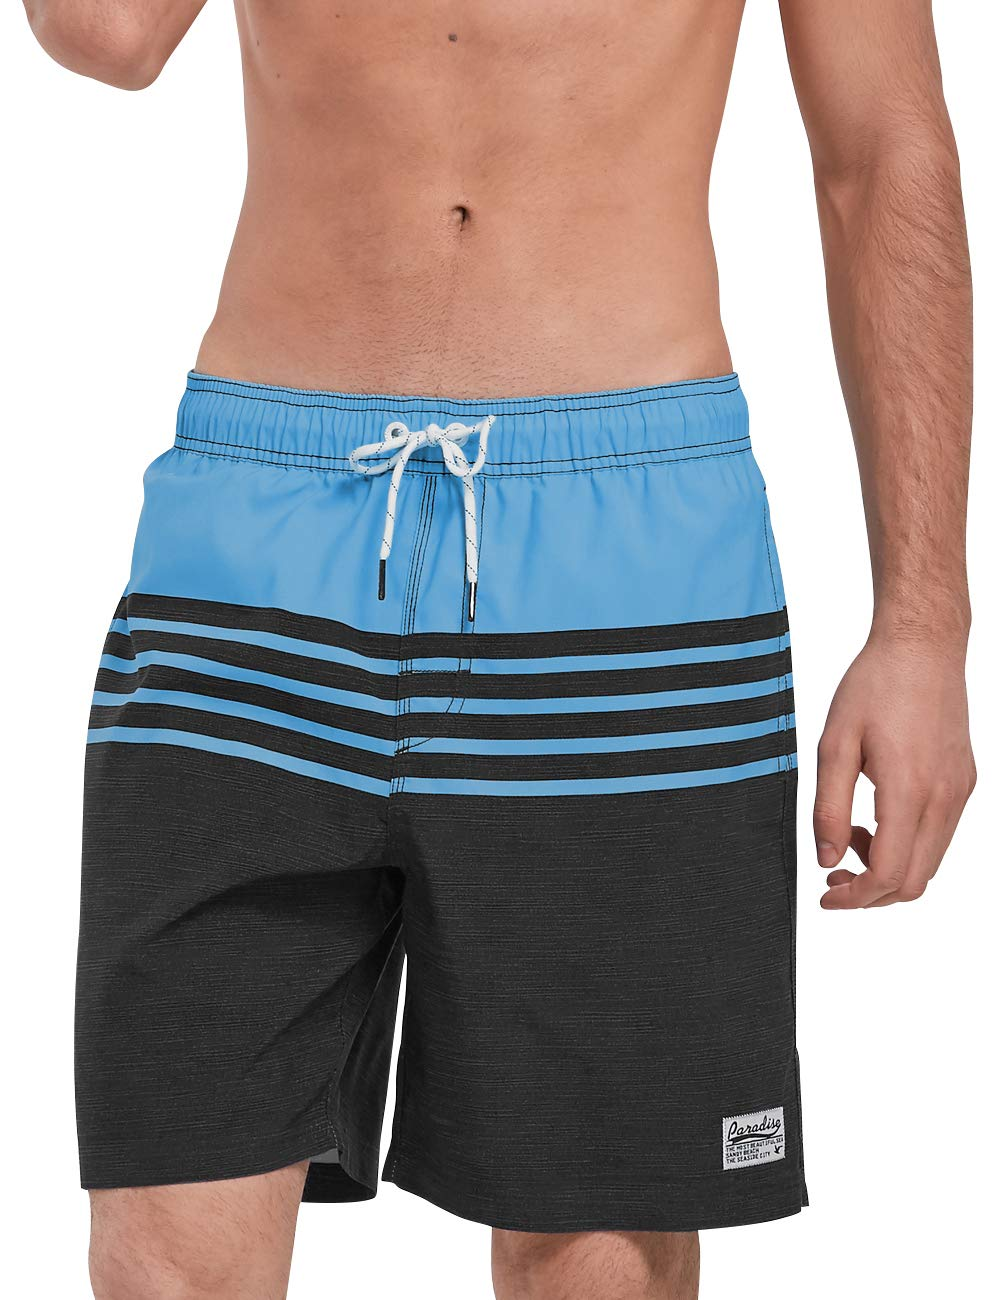 QRANSS Mens Swimming Trunks with Mesh Lining Surfing Shorts (Medium / 34-36 Inches, Blue Gray) by QRANSS